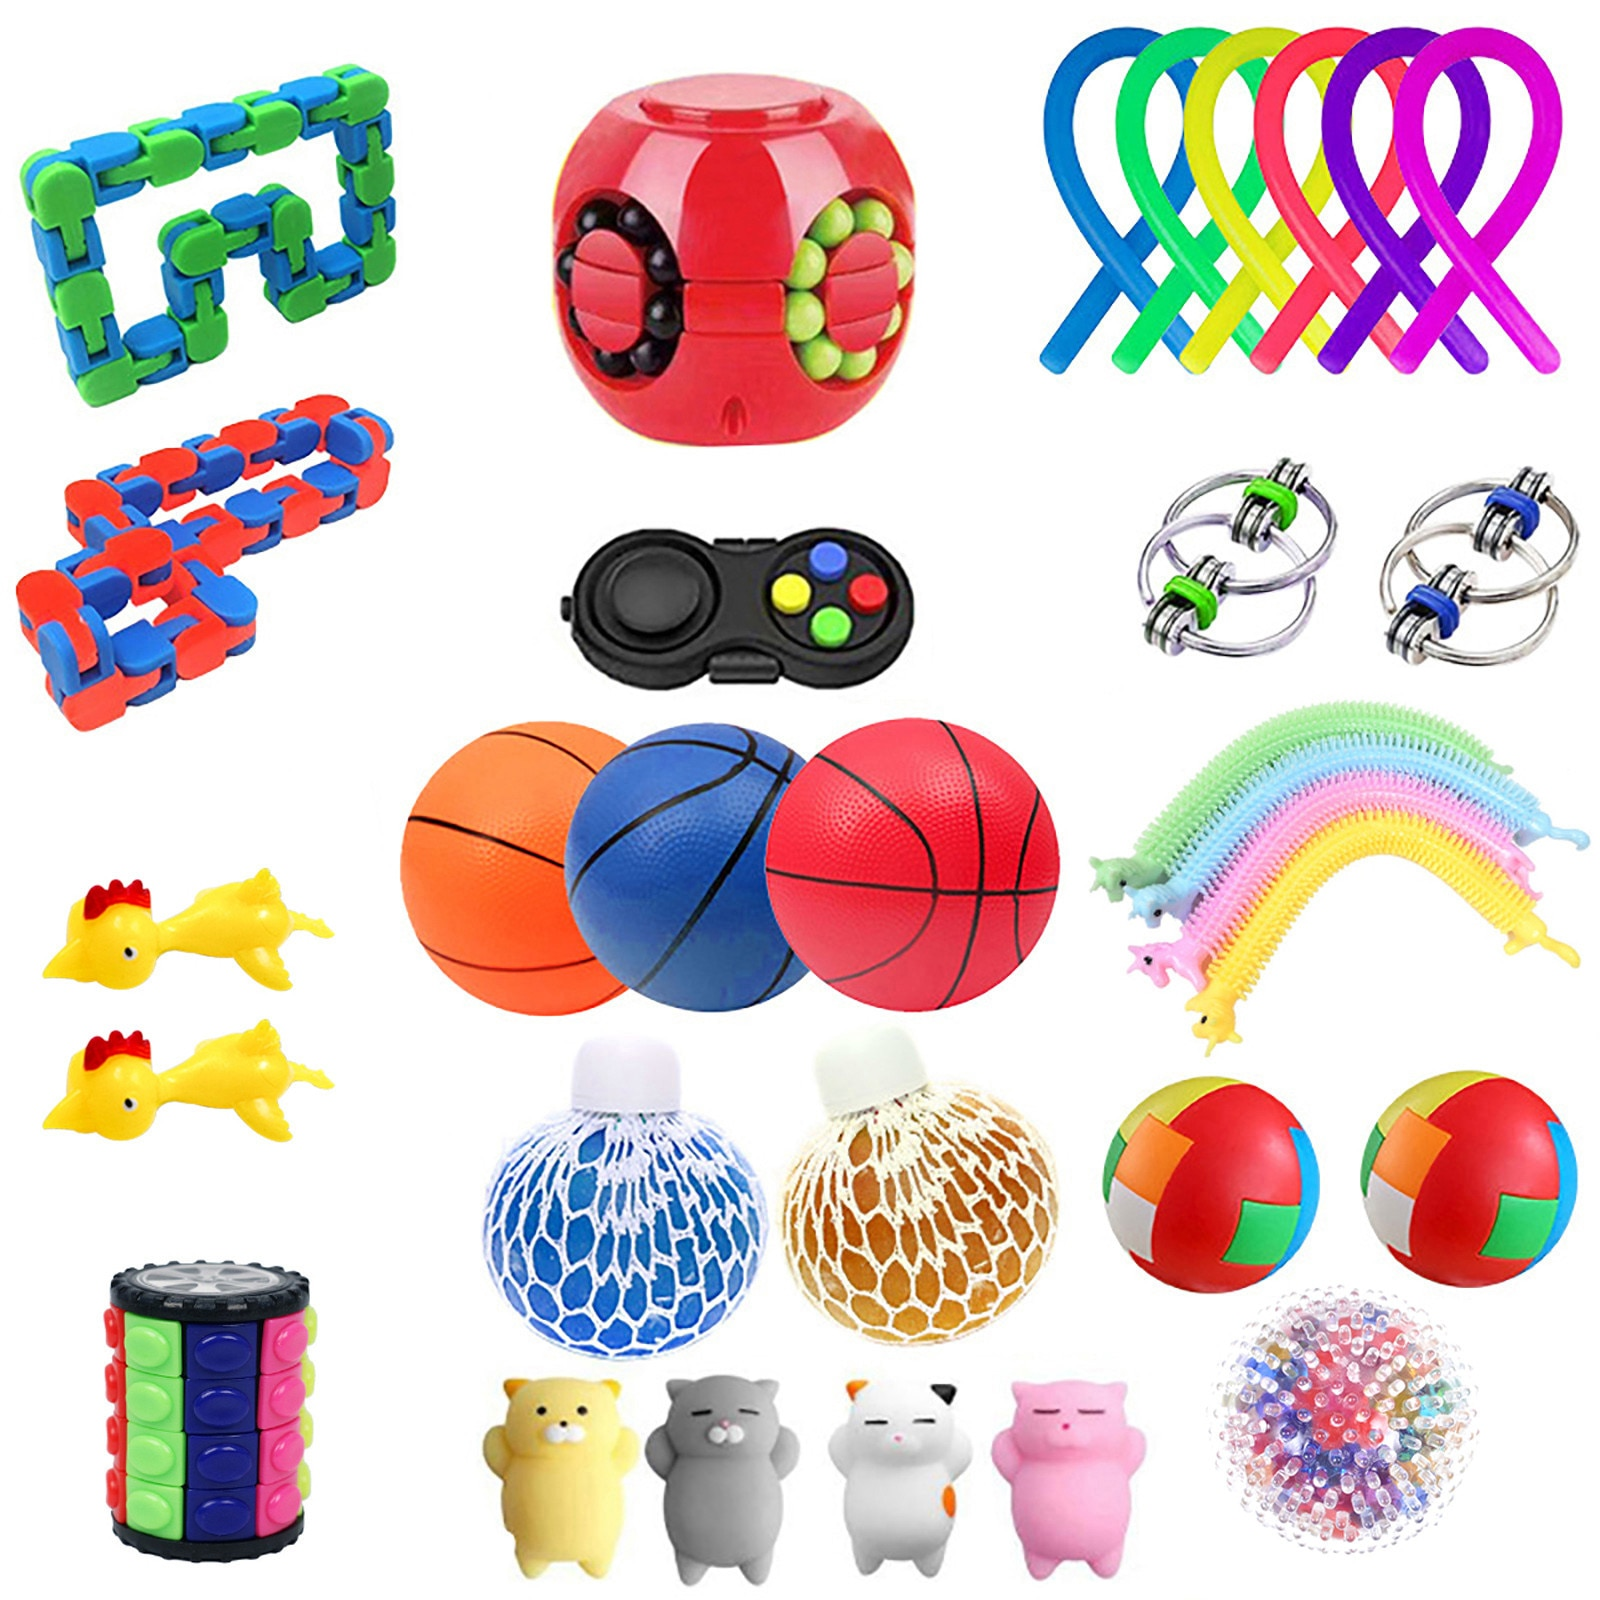 Fidget Sensory Toy Pack Stress Relief Toys Autism Special Needs Anxiety Relief Stress Pops Bubble Fidget Toys For Kids Adults enlarge